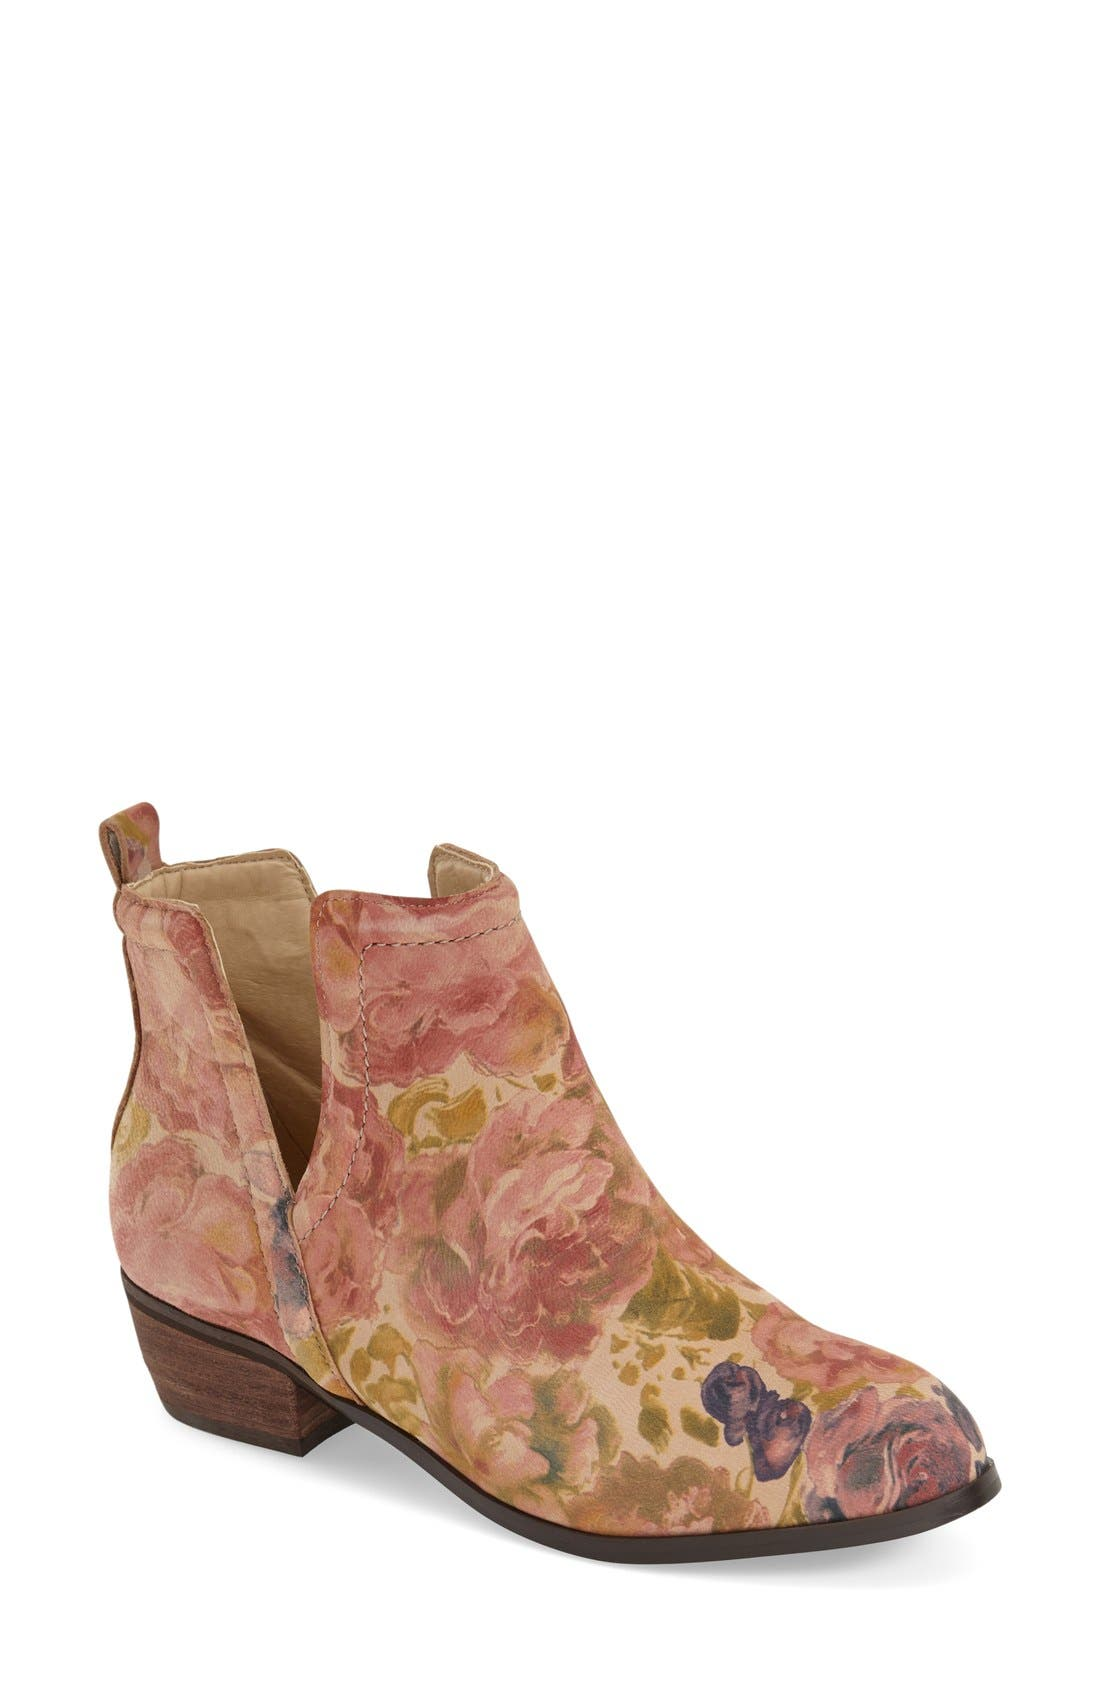 Alternate Image 1 Selected - Sbicca 'Rosette' Cutout Bootie (Women)